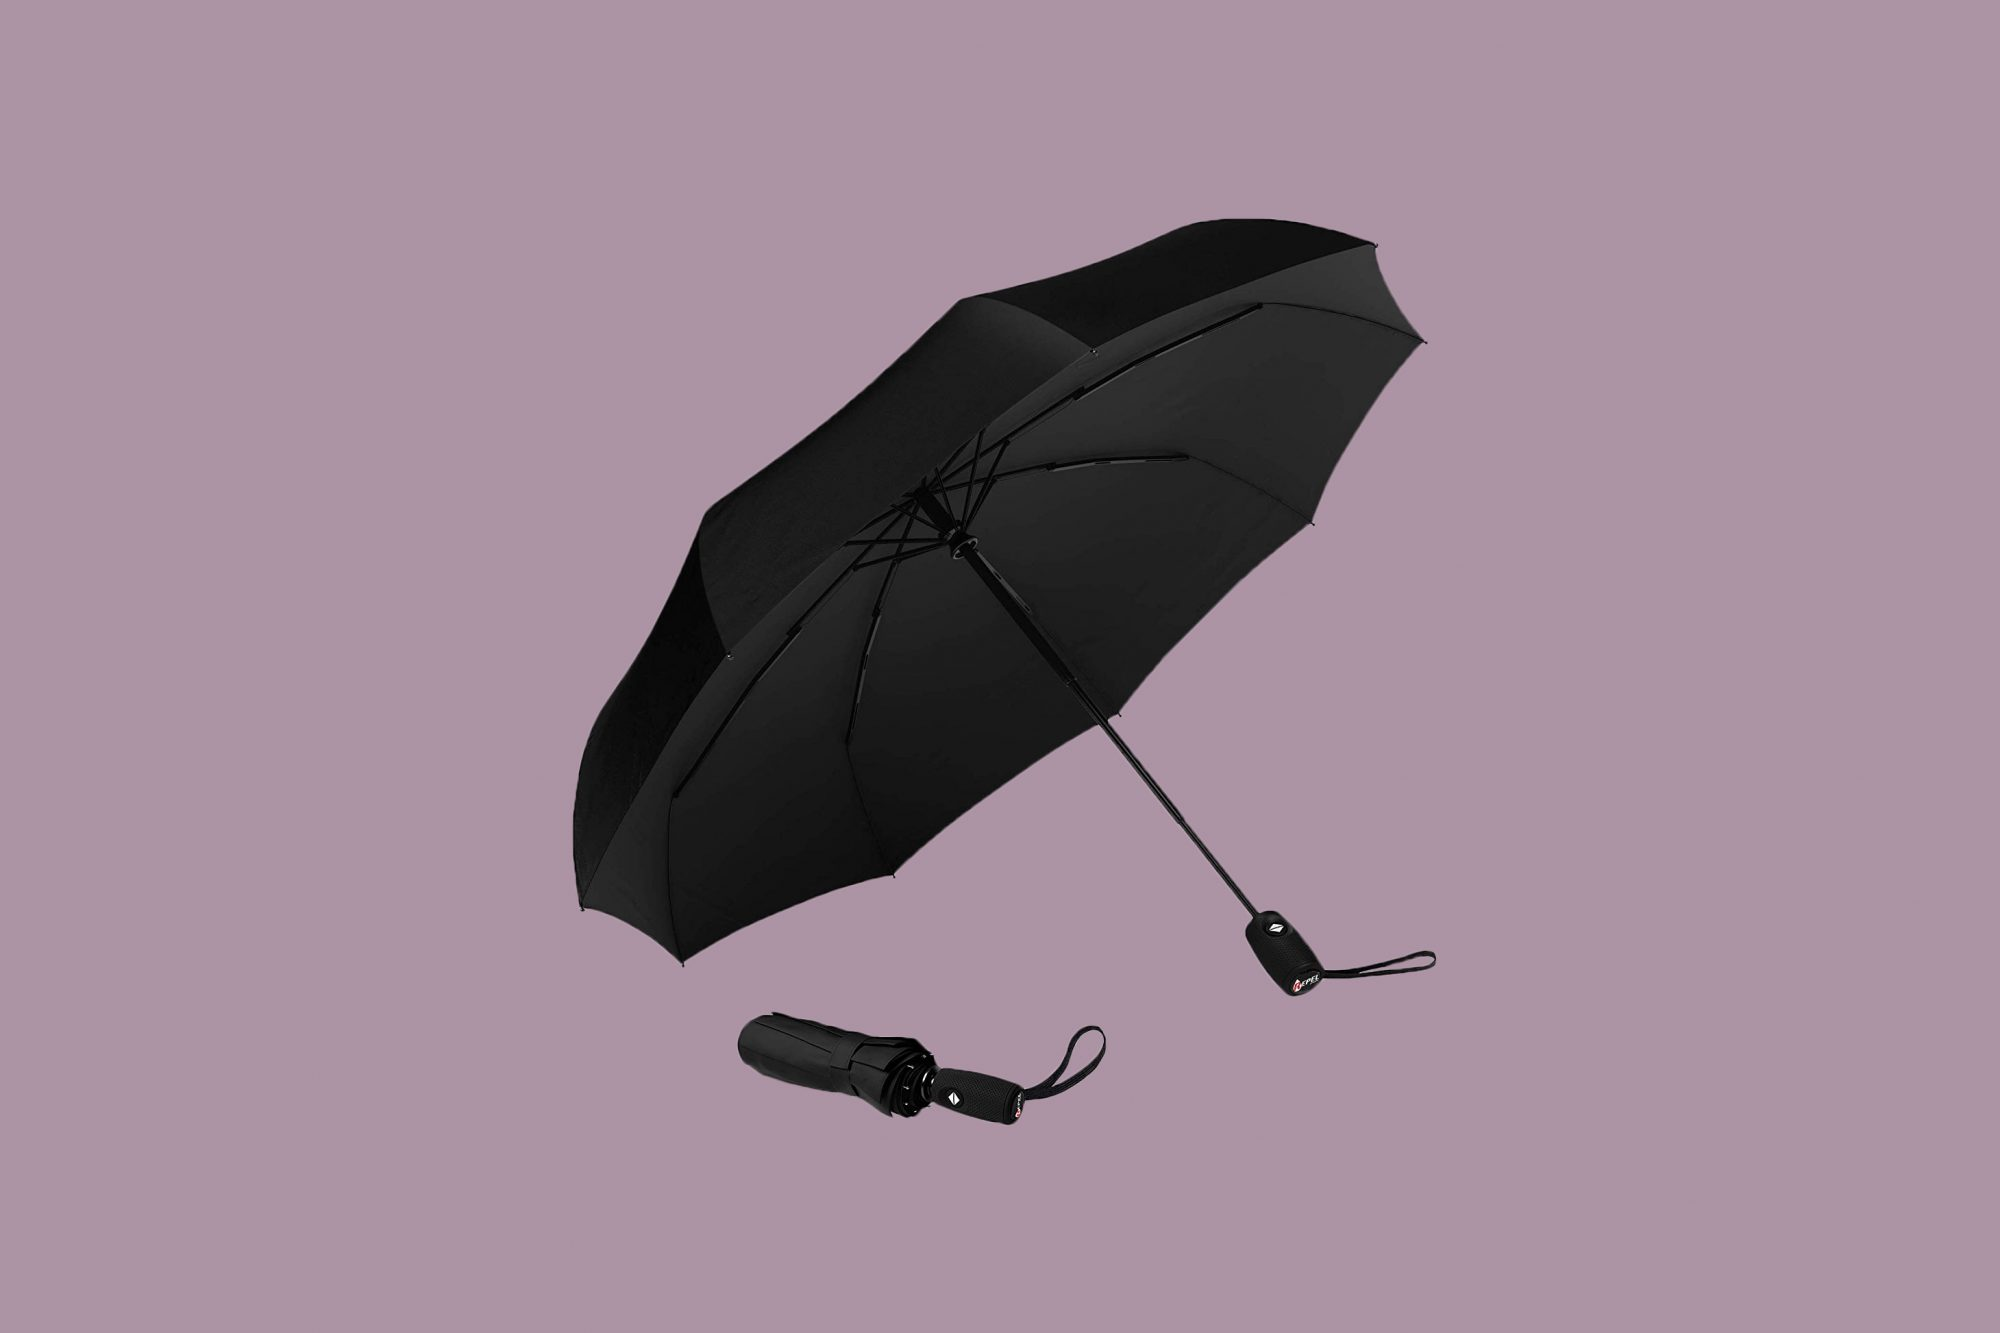 Repel Umbrella Windproof Travel Umbrella with Teflon Coating